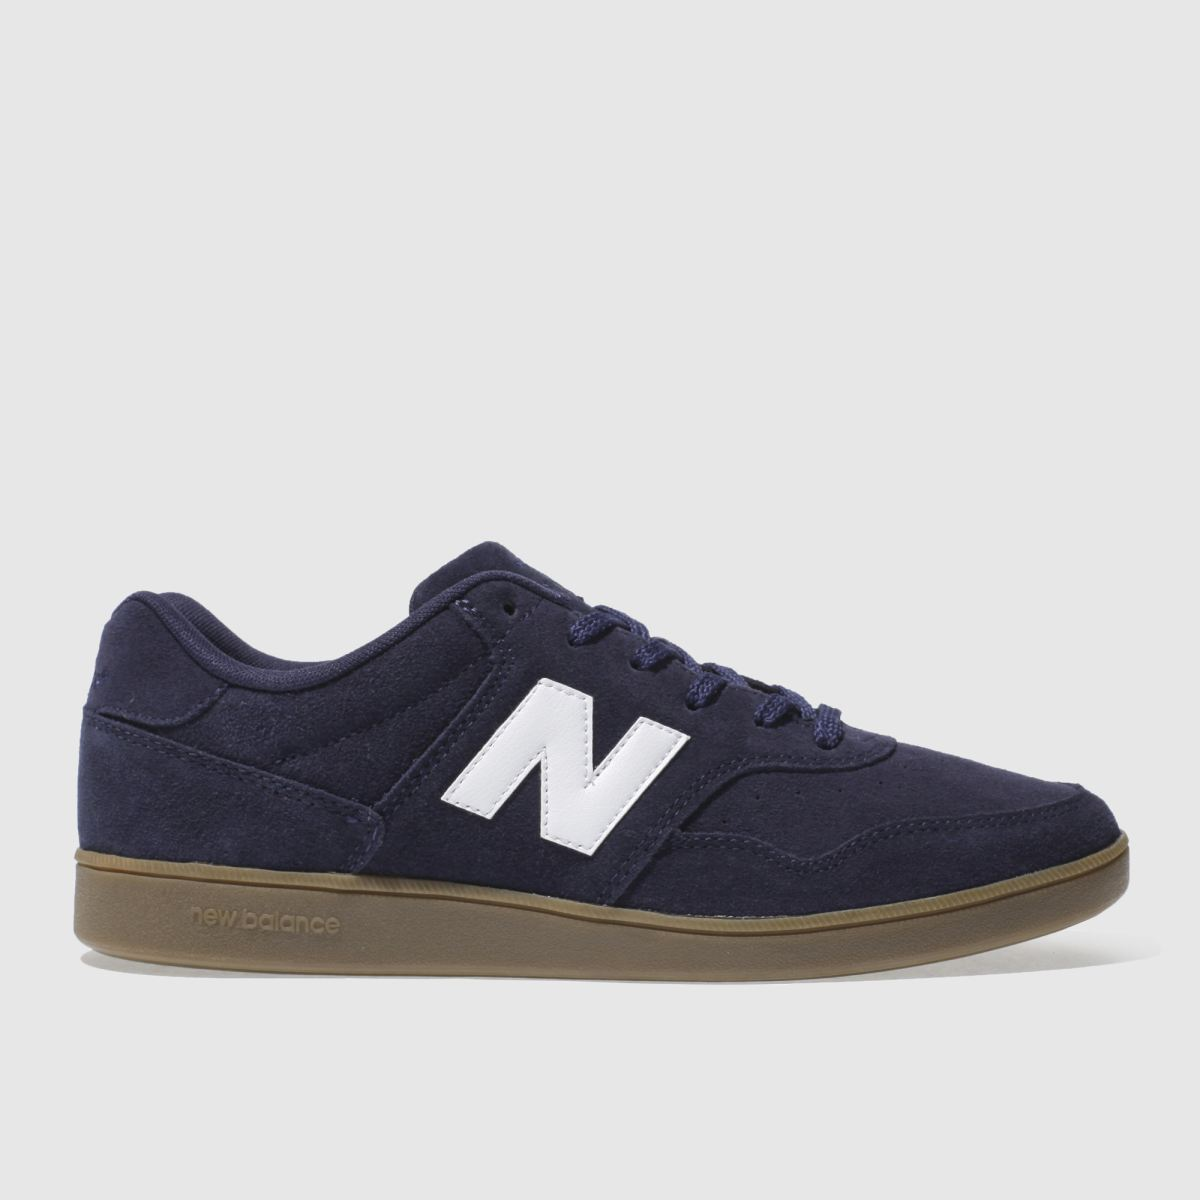 New Balance Navy & White 288 Trainers